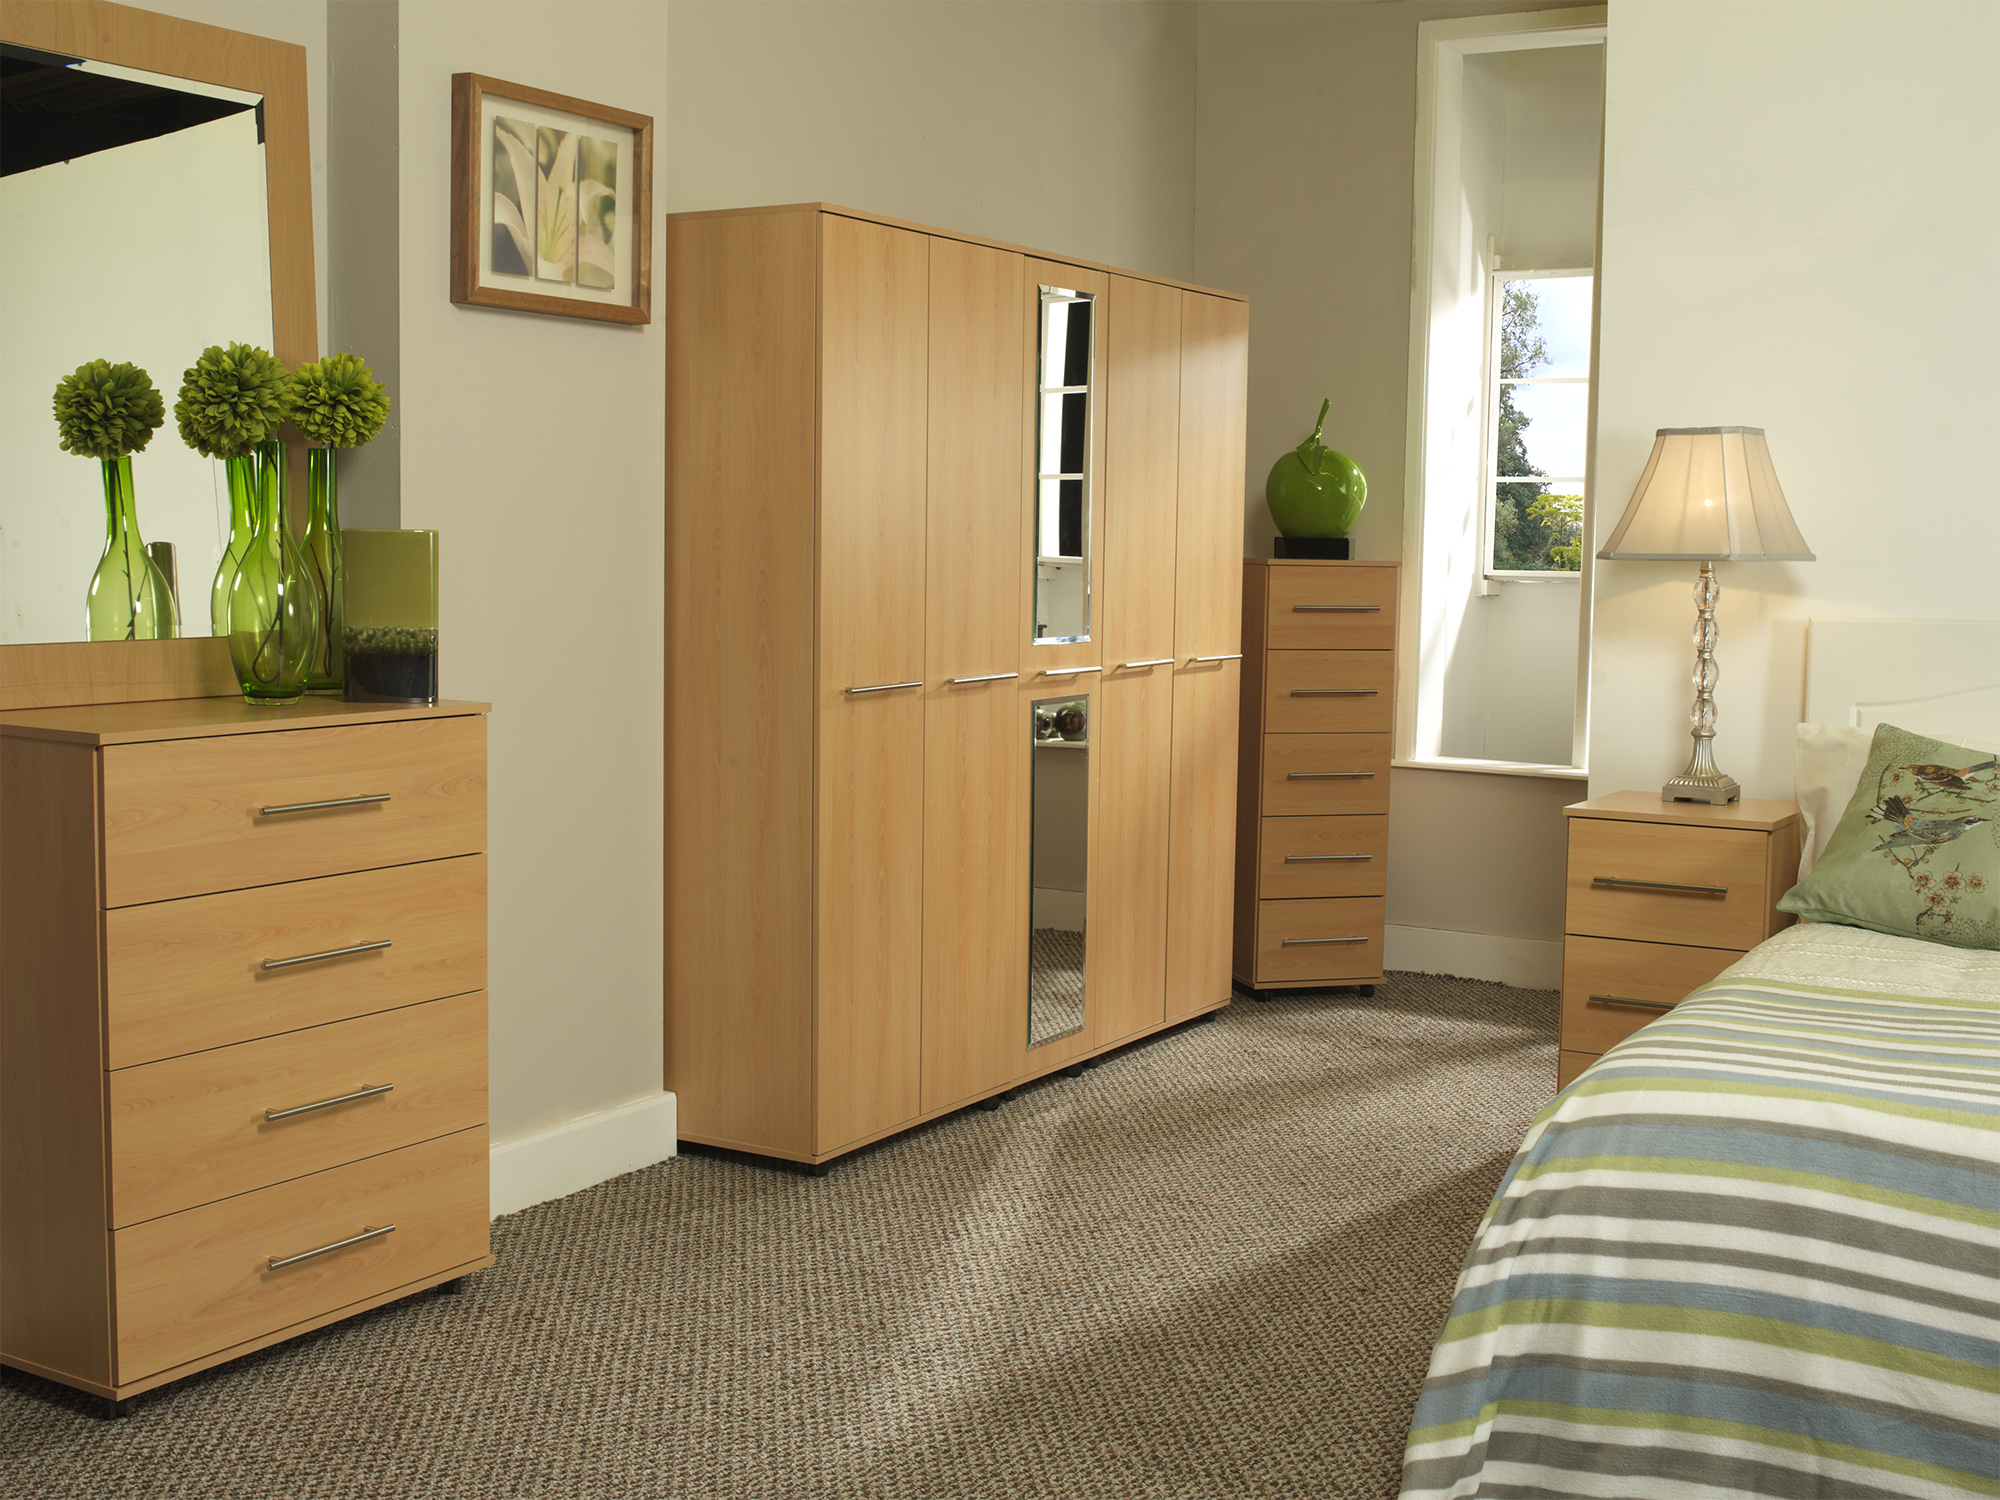 bedroom furniture sets ready assembled photo - 5